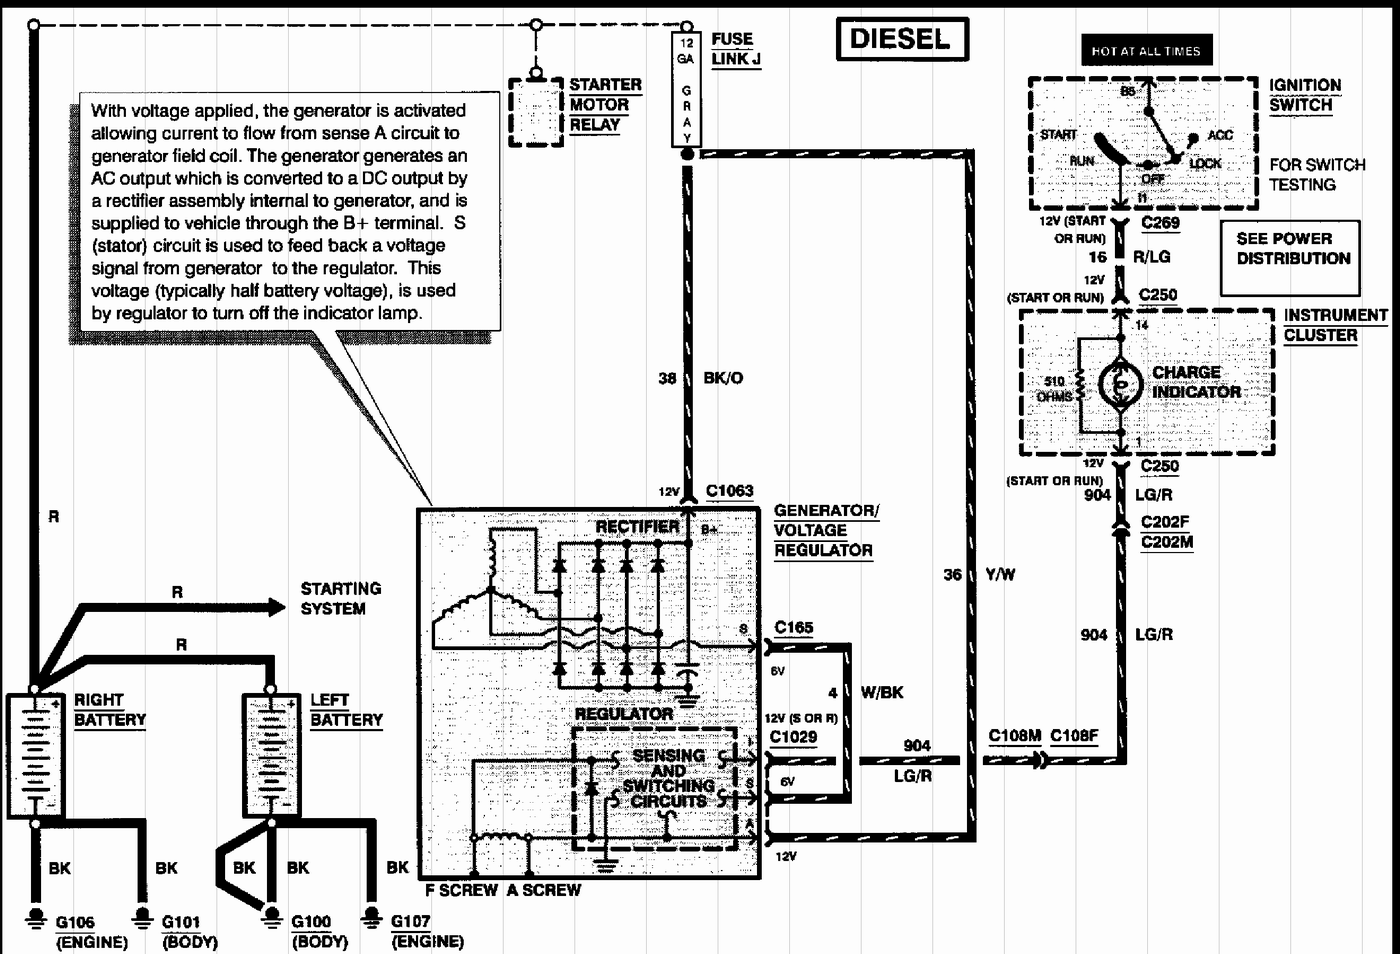 I need a wiring diagram for a 97 F350 73 Powerstroke with